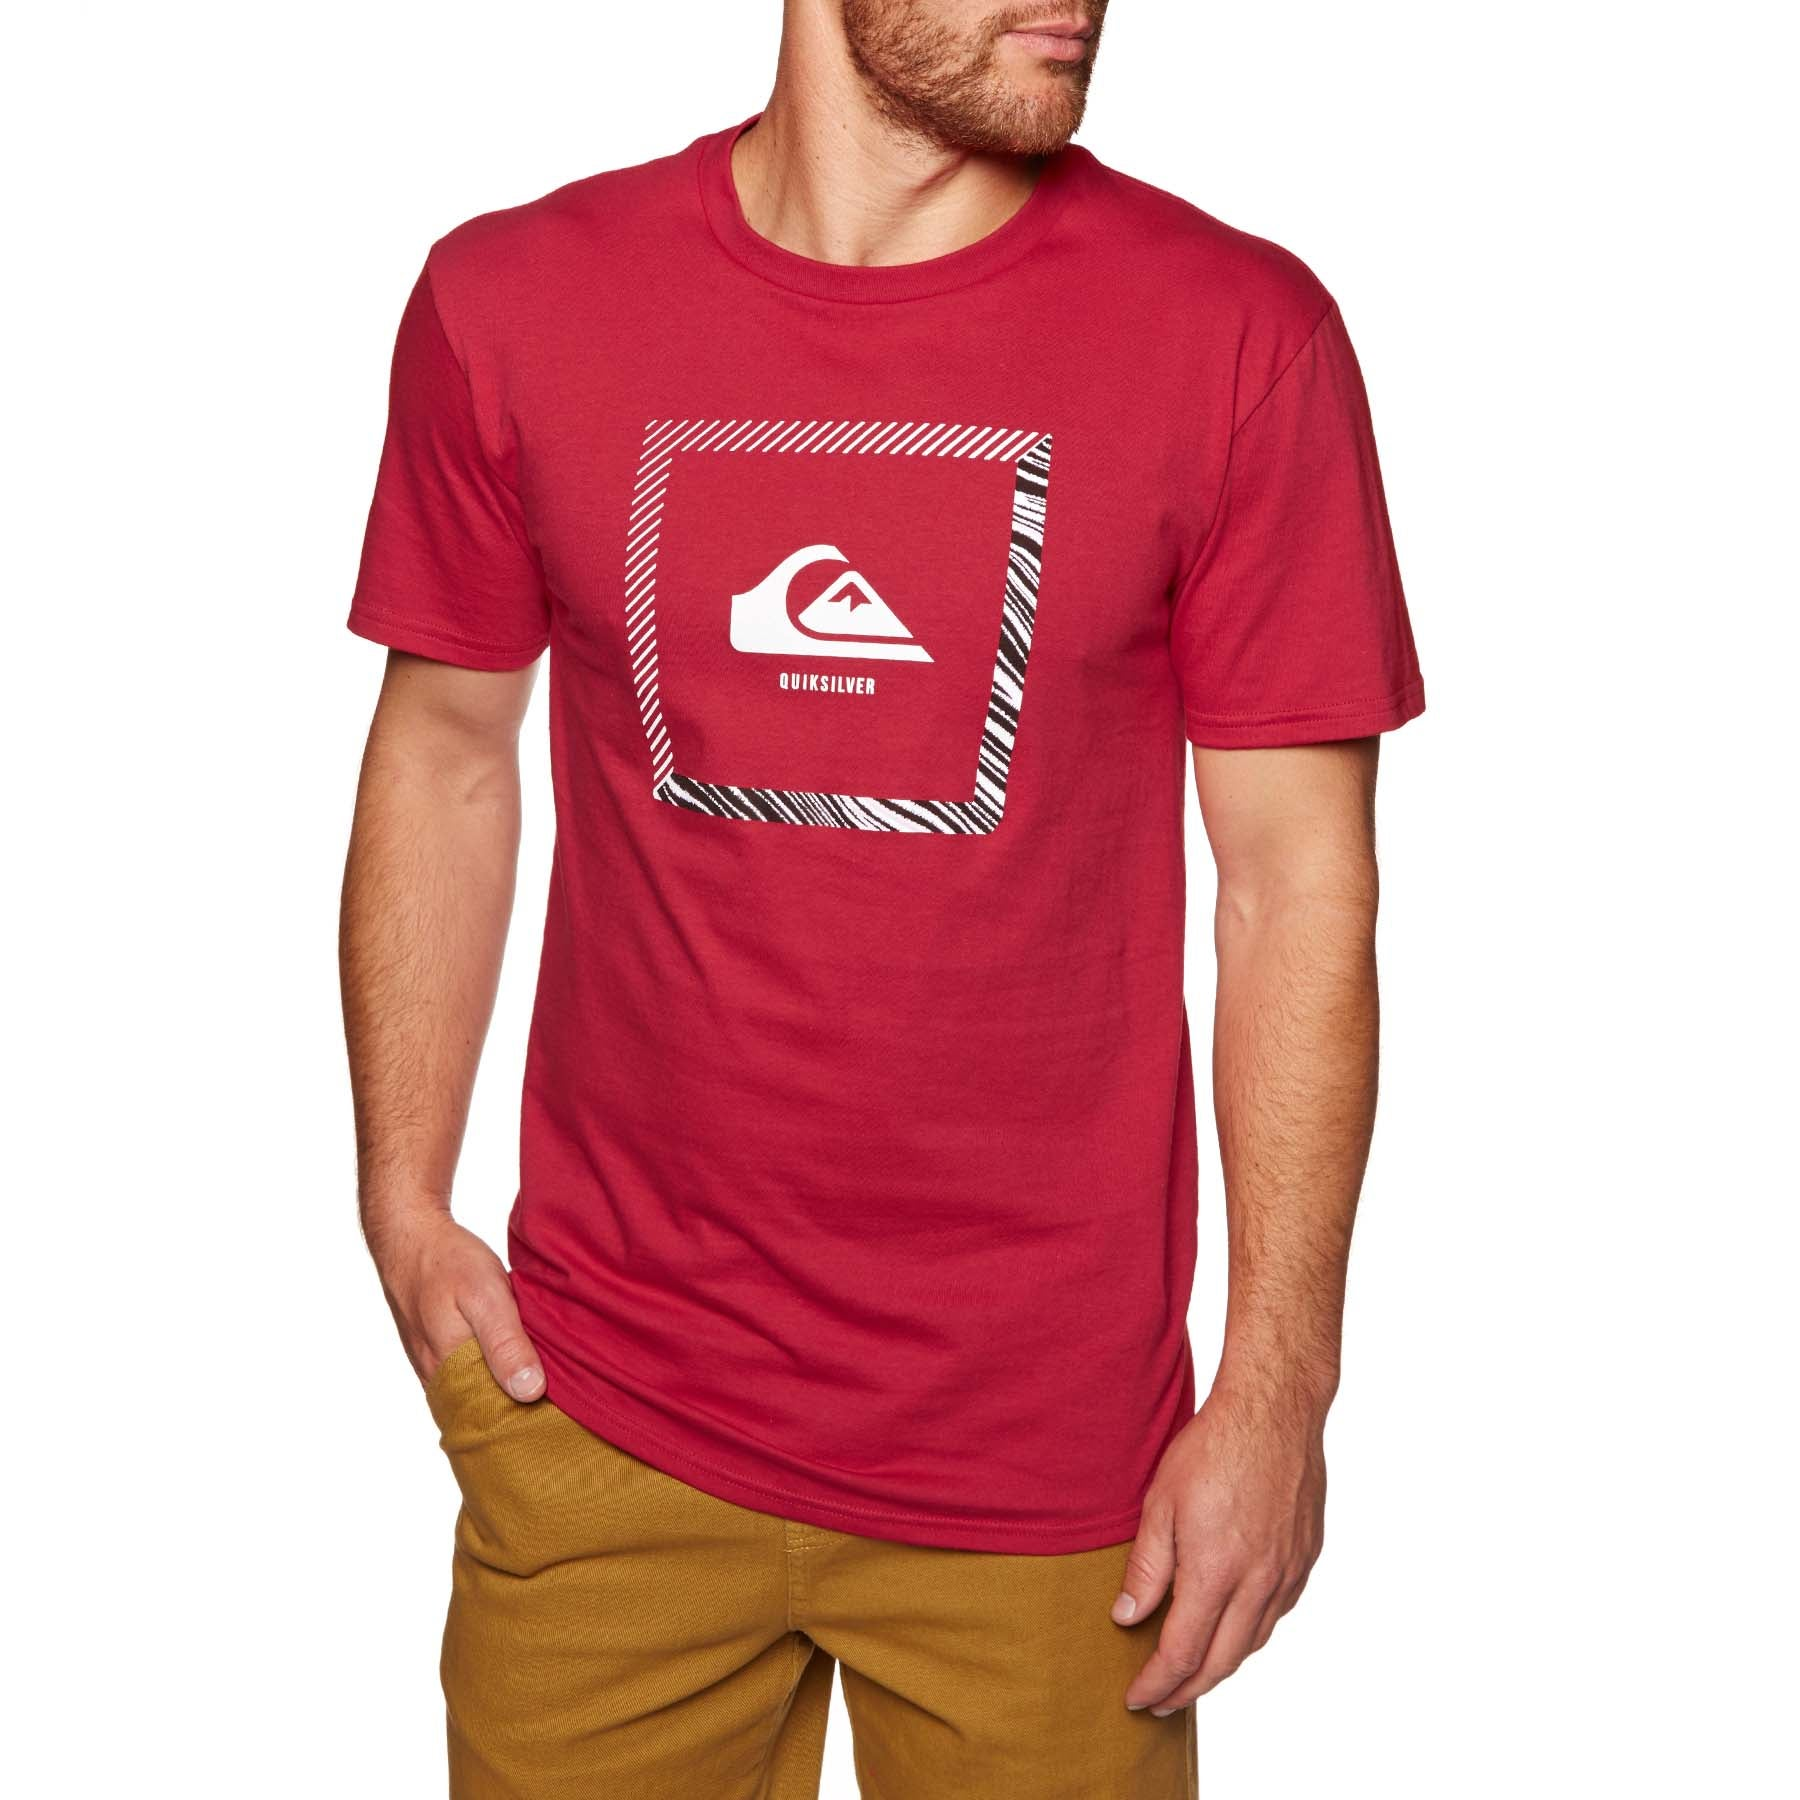 Quiksilver Beat The Heat Short Sleeve T-Shirt - Rrd0